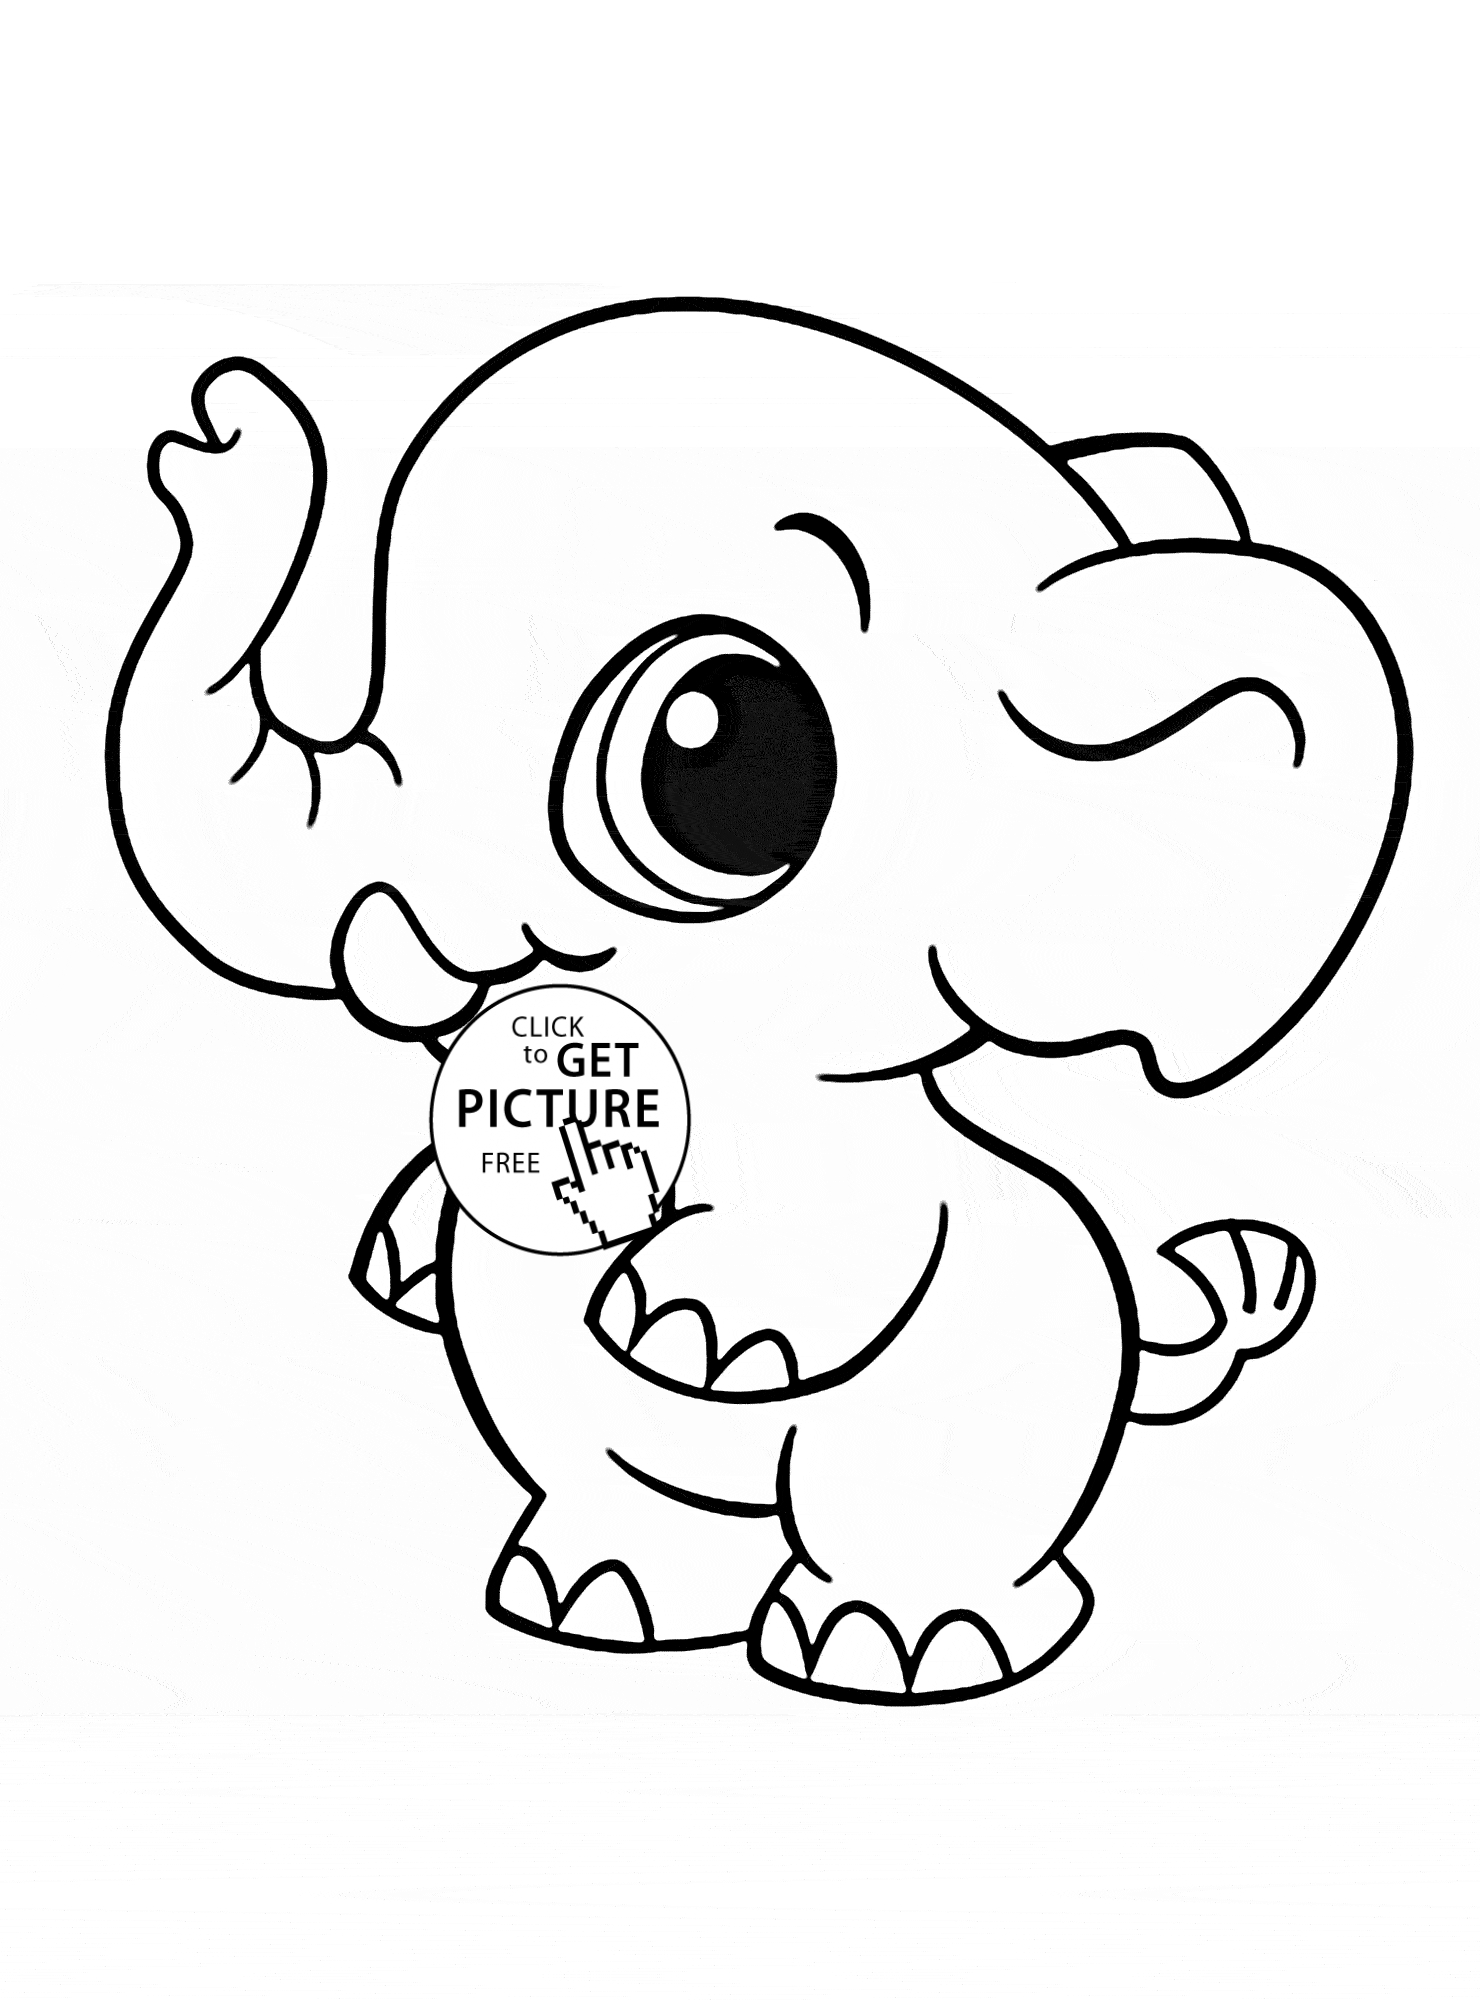 coloring panda picture pandas to download for free pandas kids coloring pages picture panda coloring